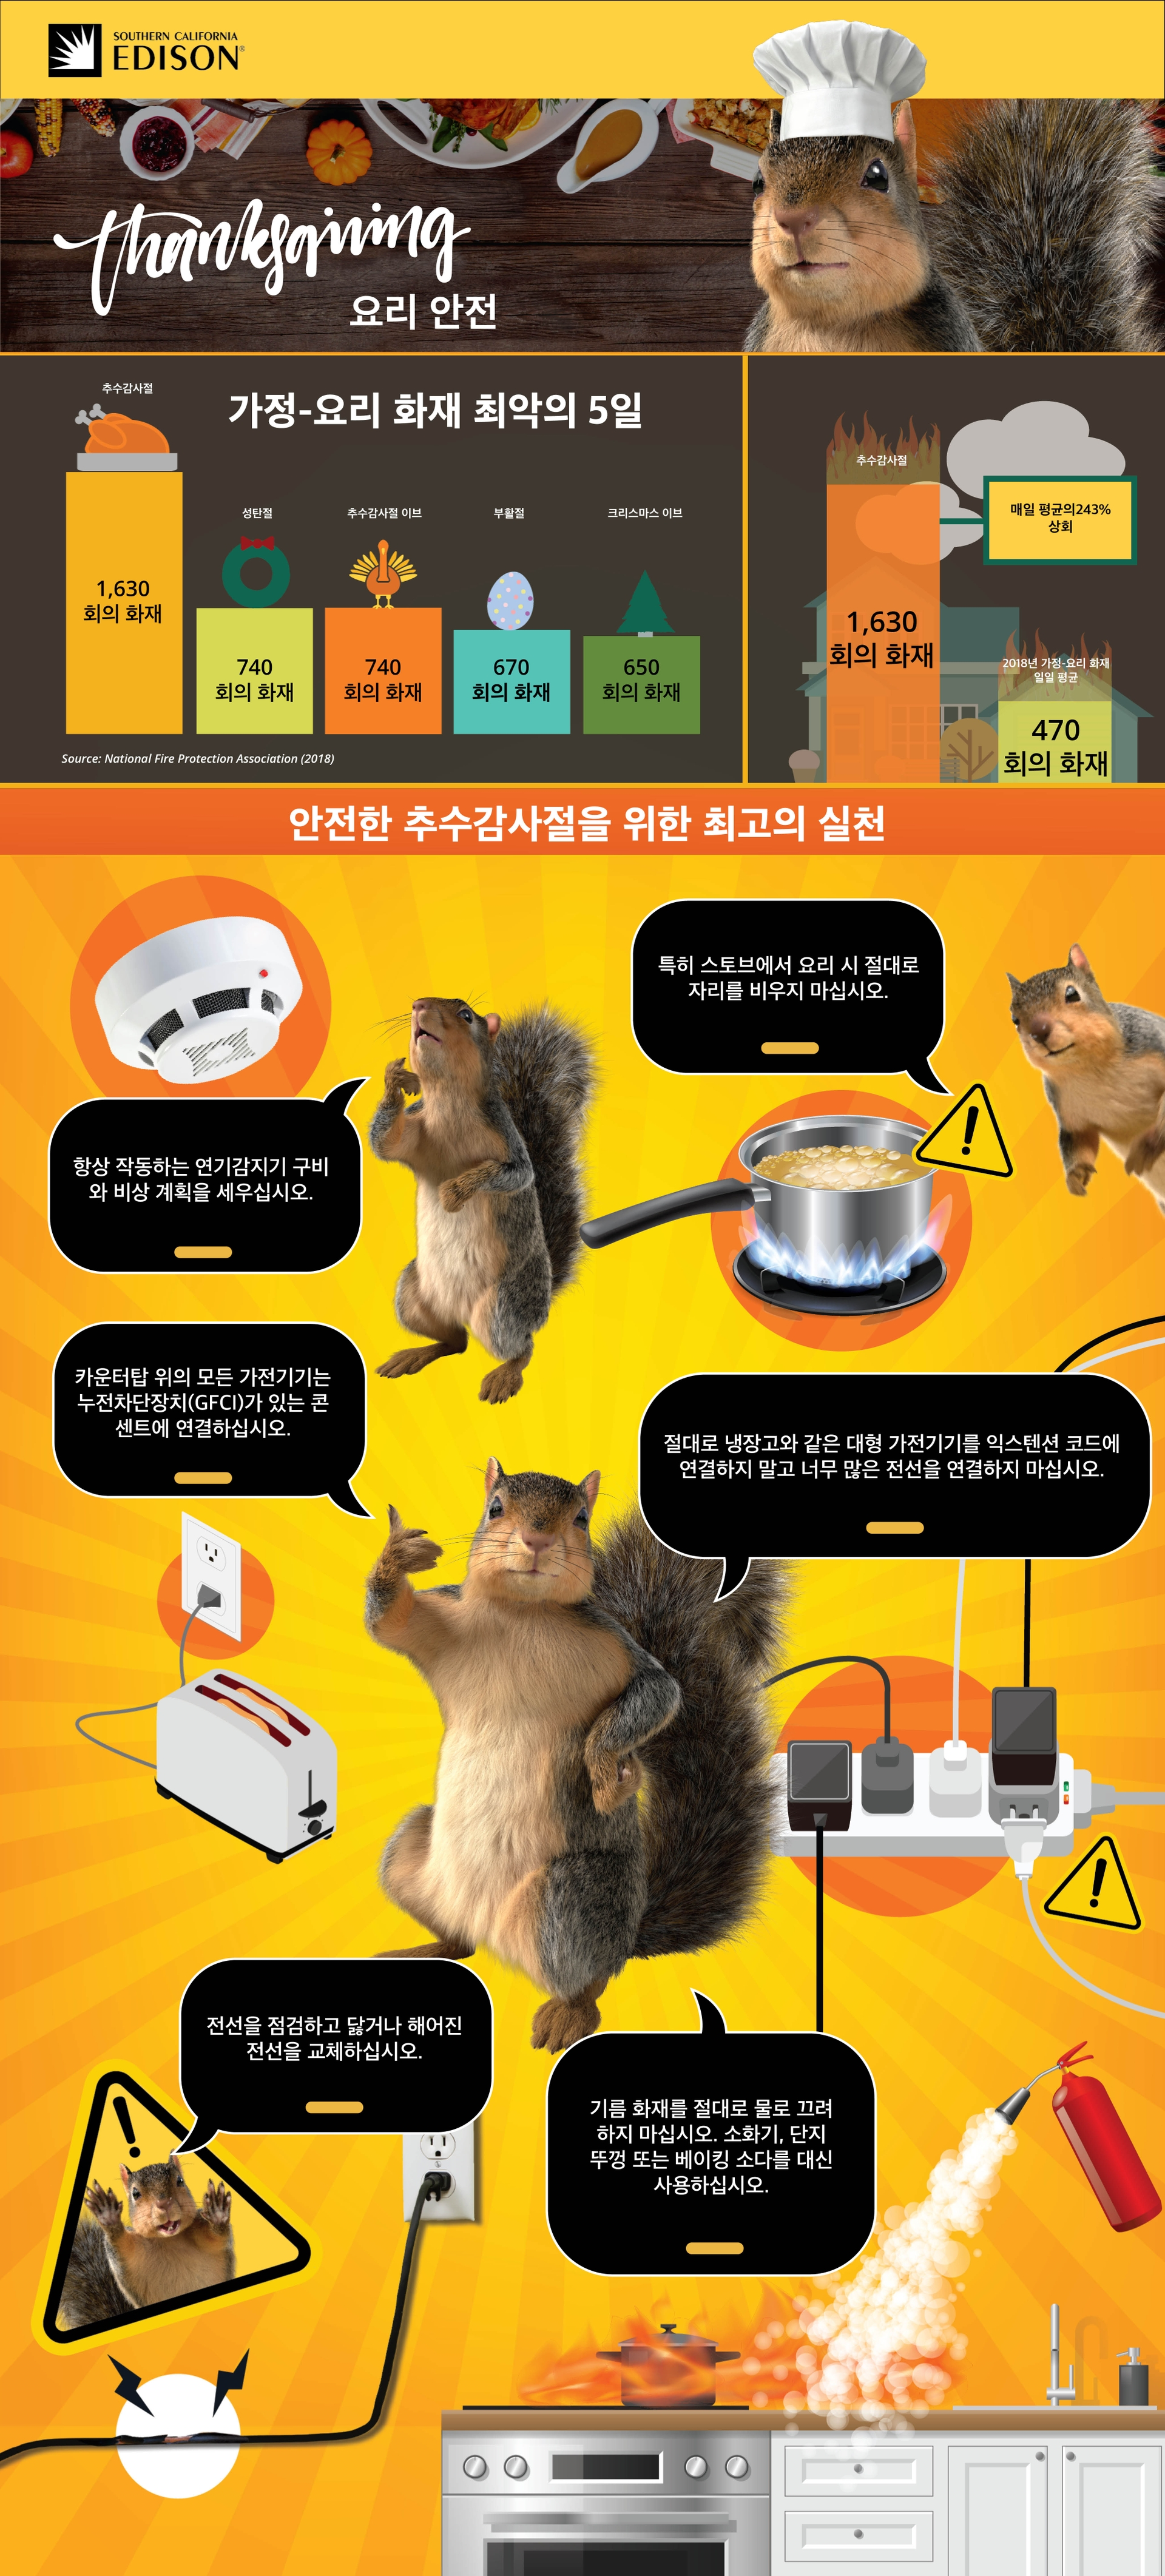 Thanksgiving_Cooking_Safety_KO